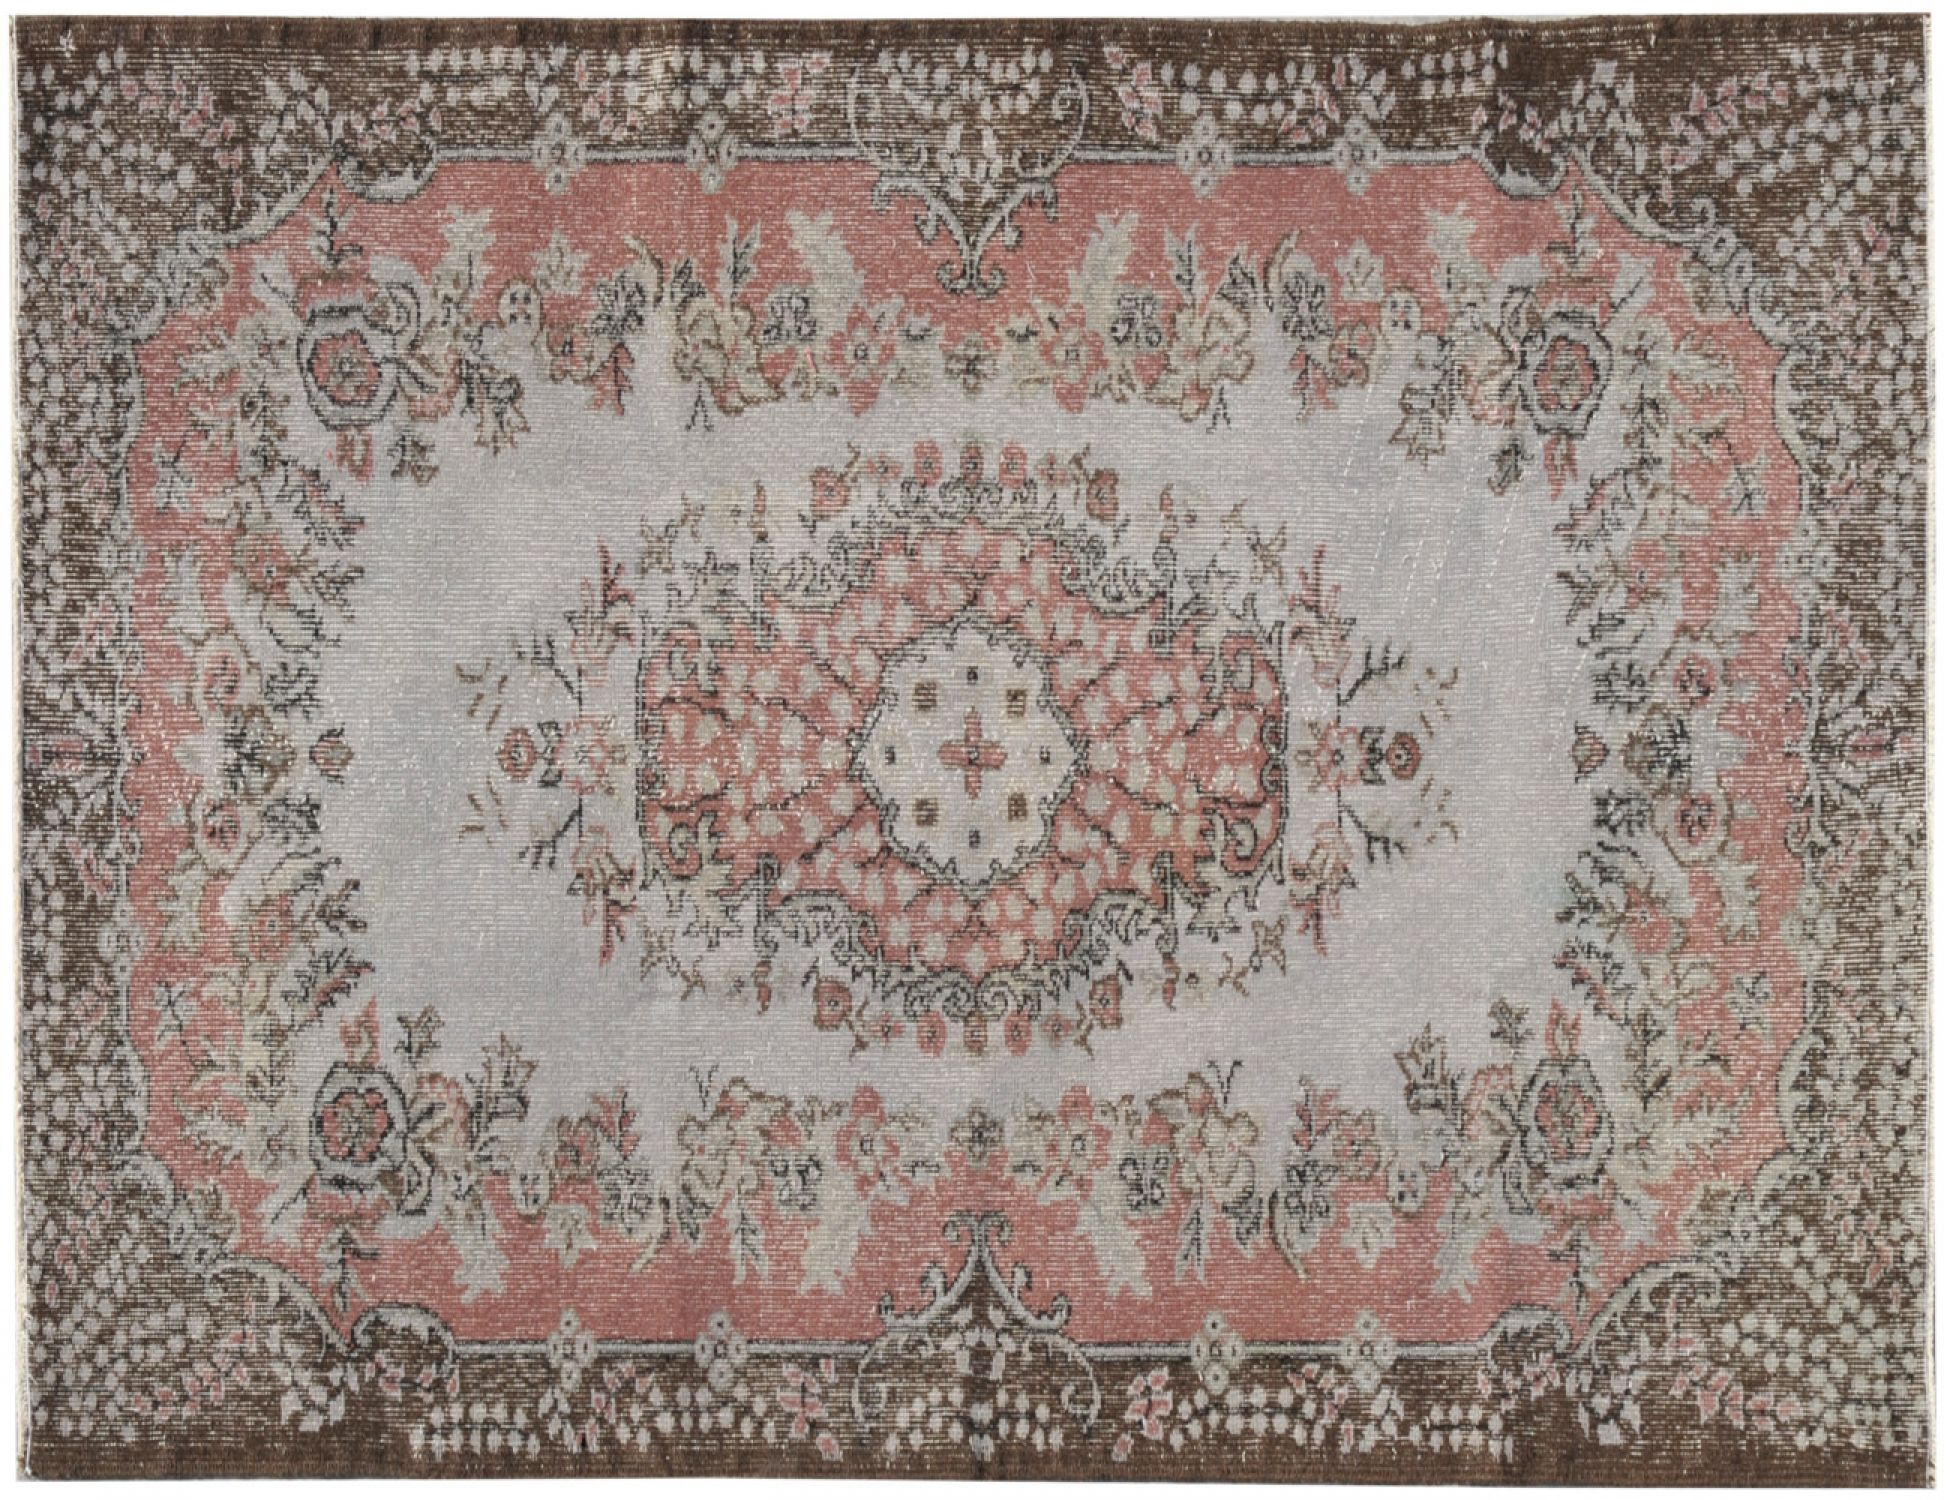 Vintage Carpet  grey <br/>212 x 120 cm